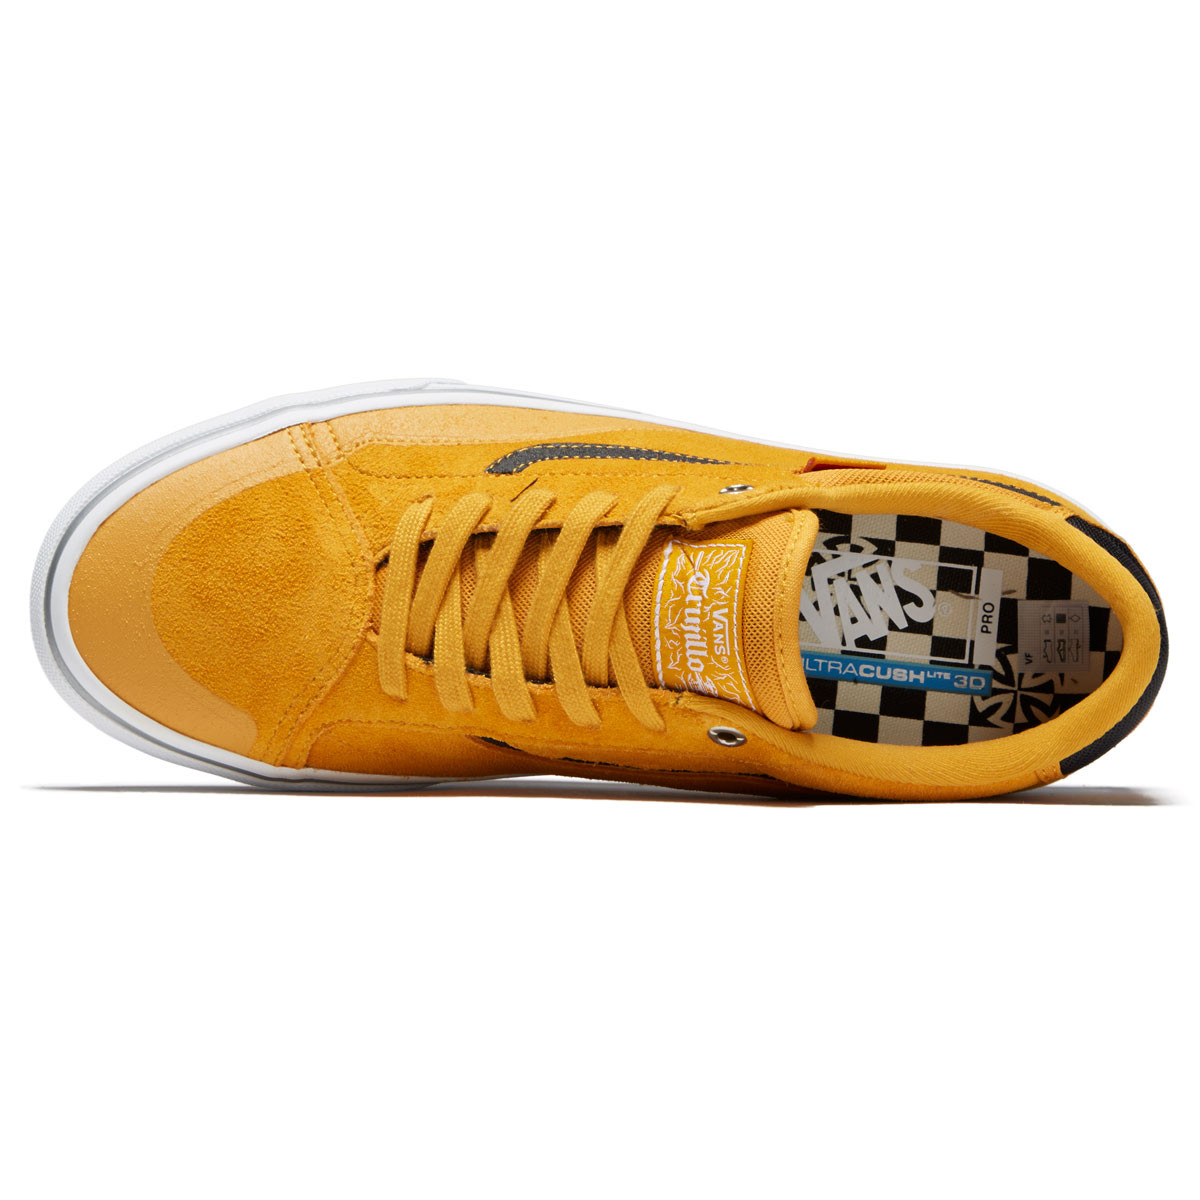 3769a4256a Vans x Independent TNT Advanced Prototype Shoes - Sunflower - 10.0